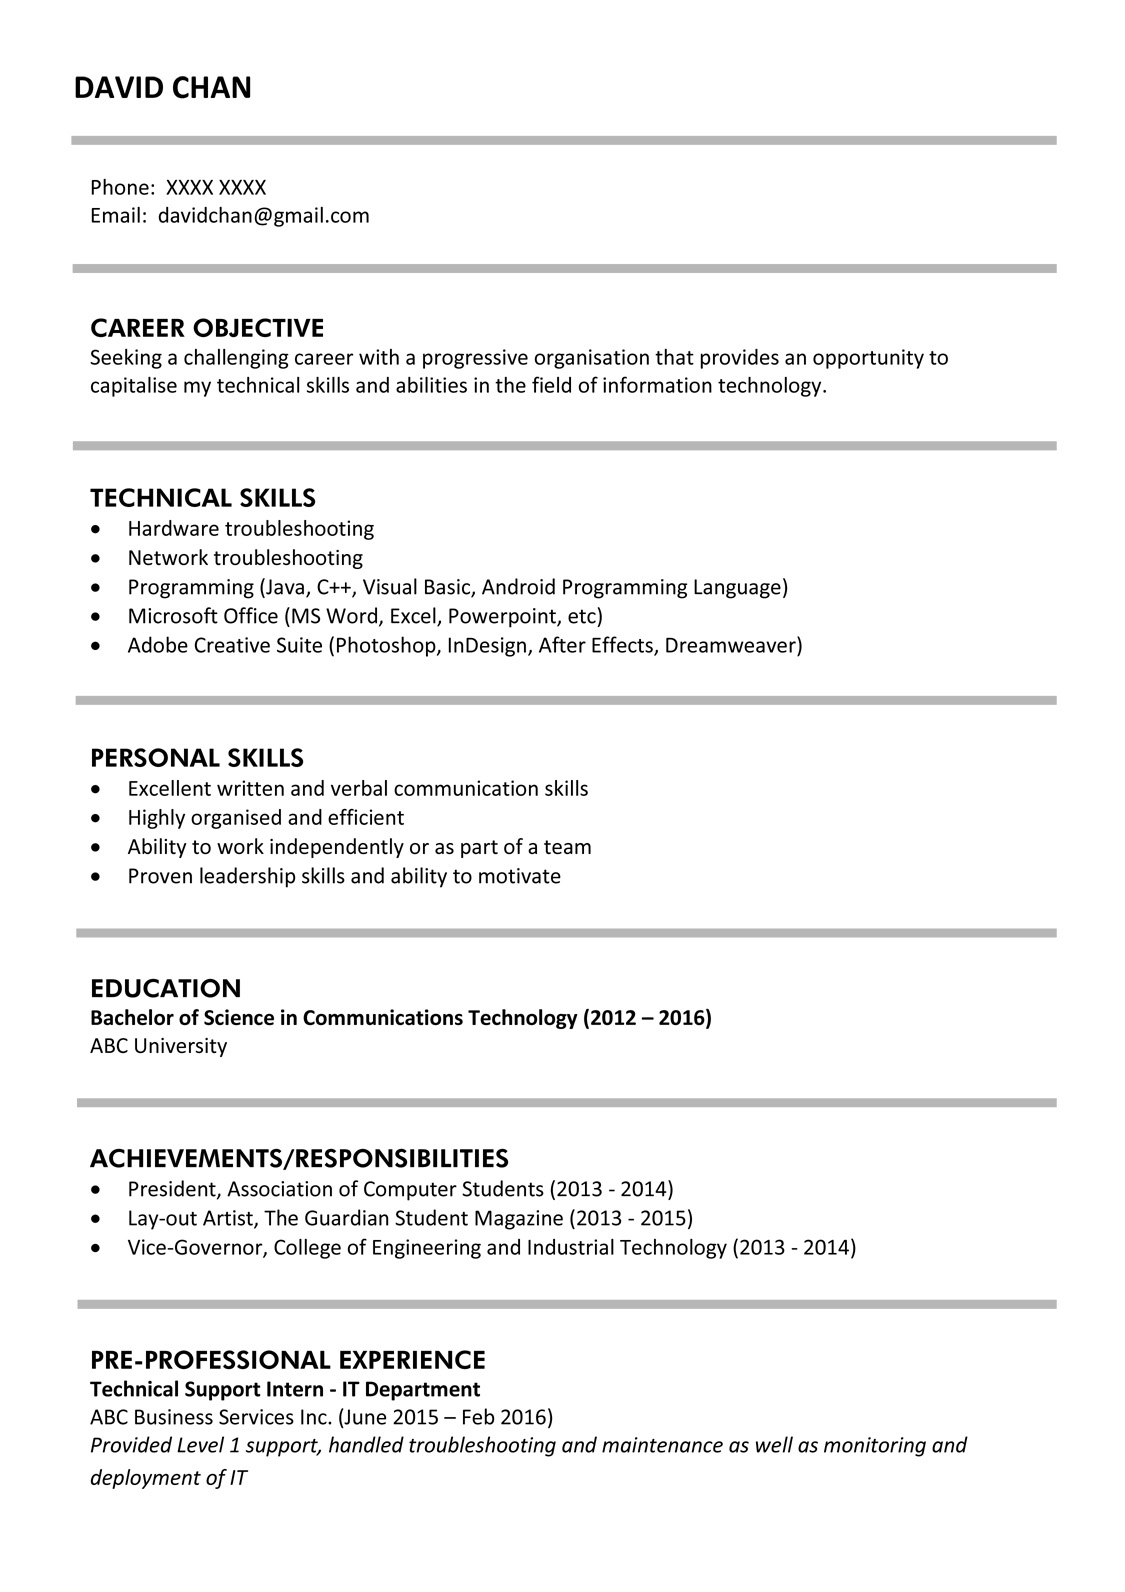 Text Resume edit hotspotsedit hotspots a functional resume Sample Resume Format 1